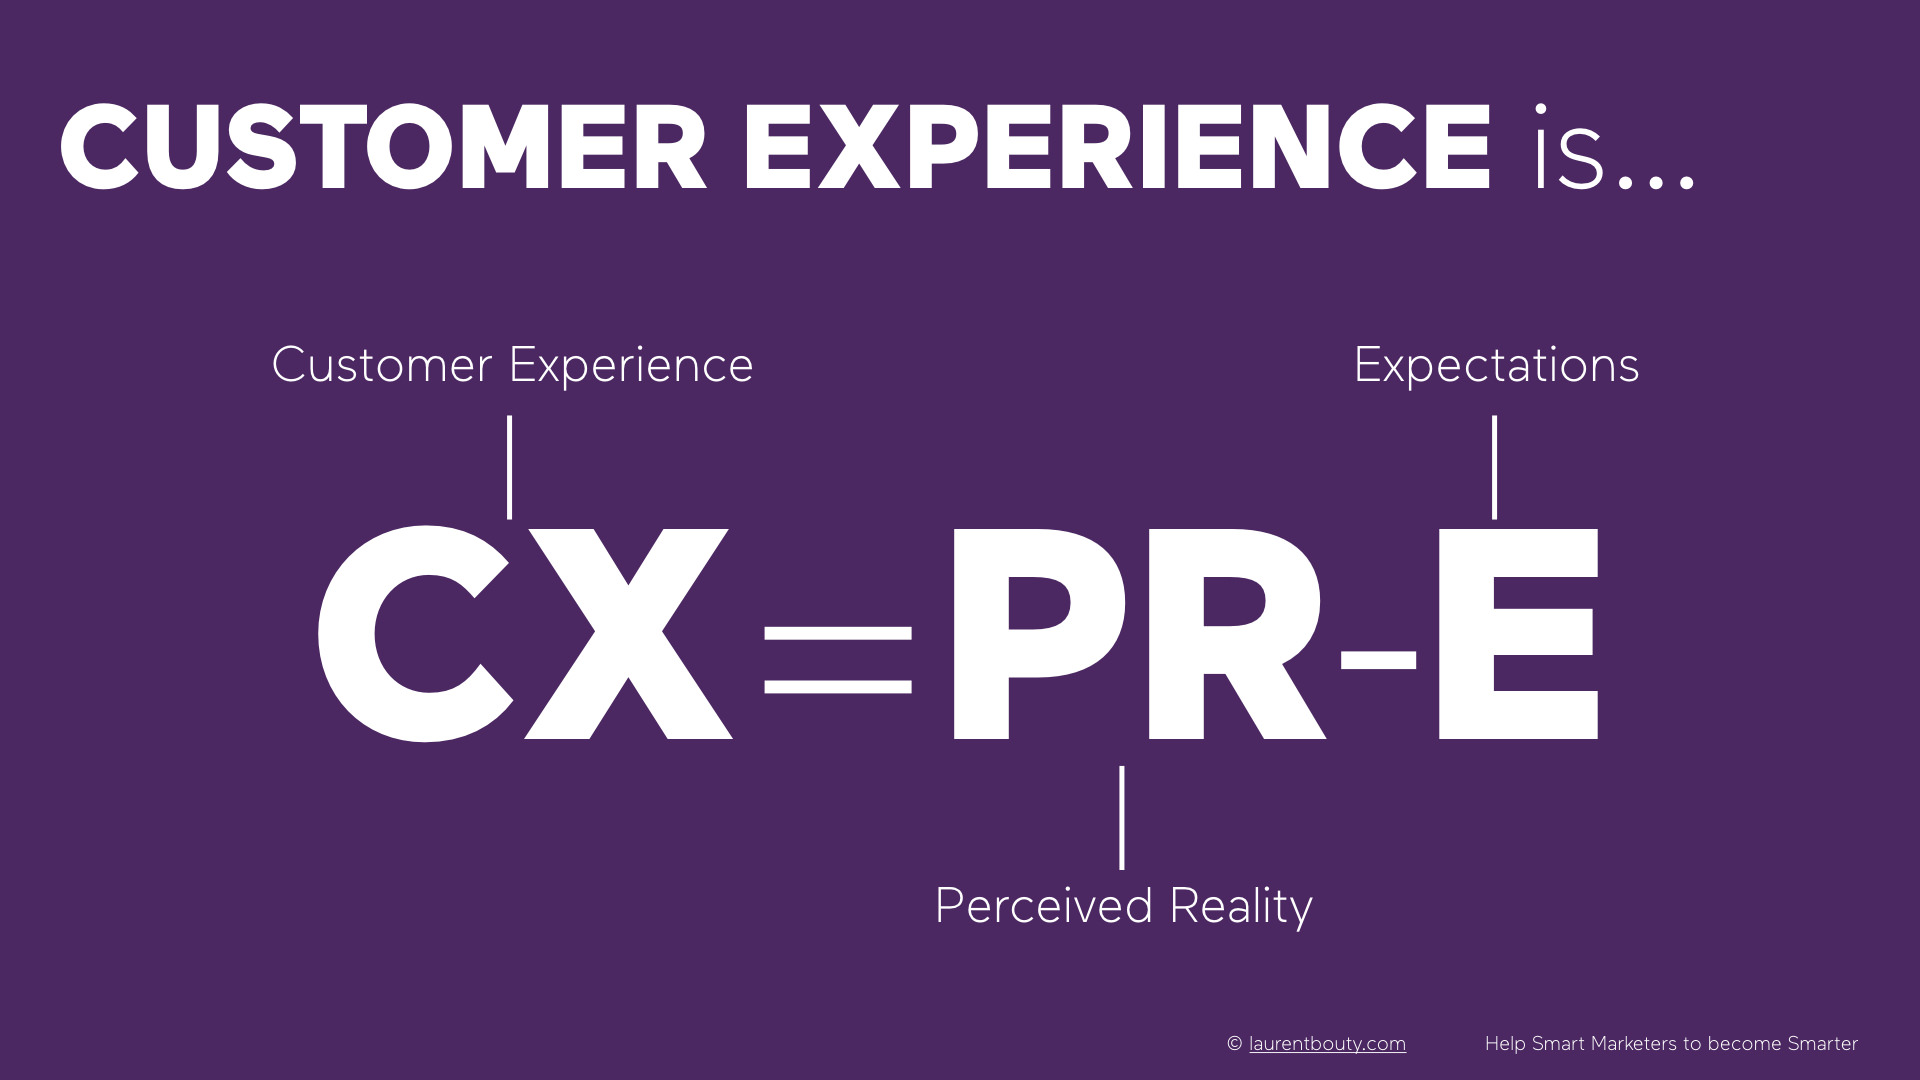 Marketers, do you know your customer experience equation?